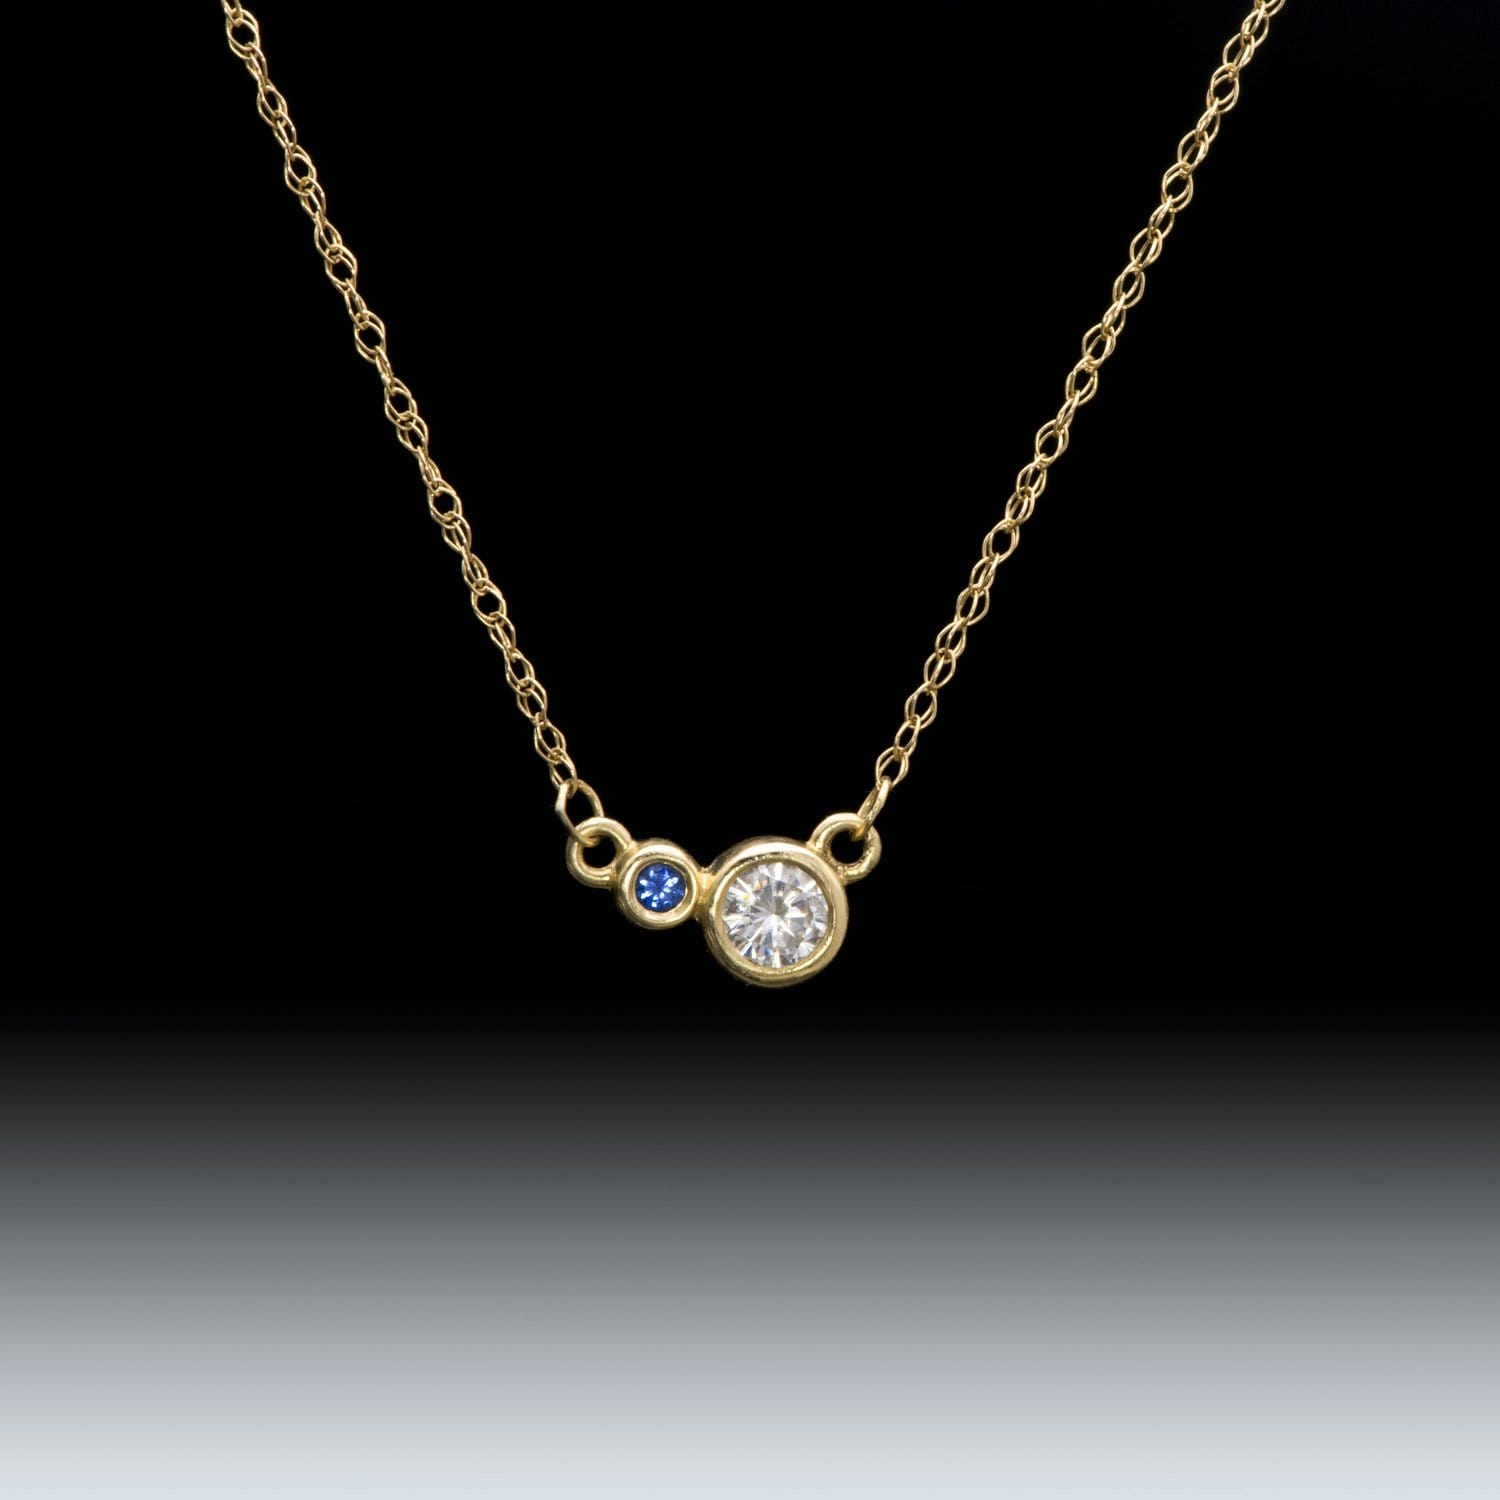 Moissanite & Ceylon Blue Sapphire 14k Yellow Gold Pendant Necklace, Ready to ship